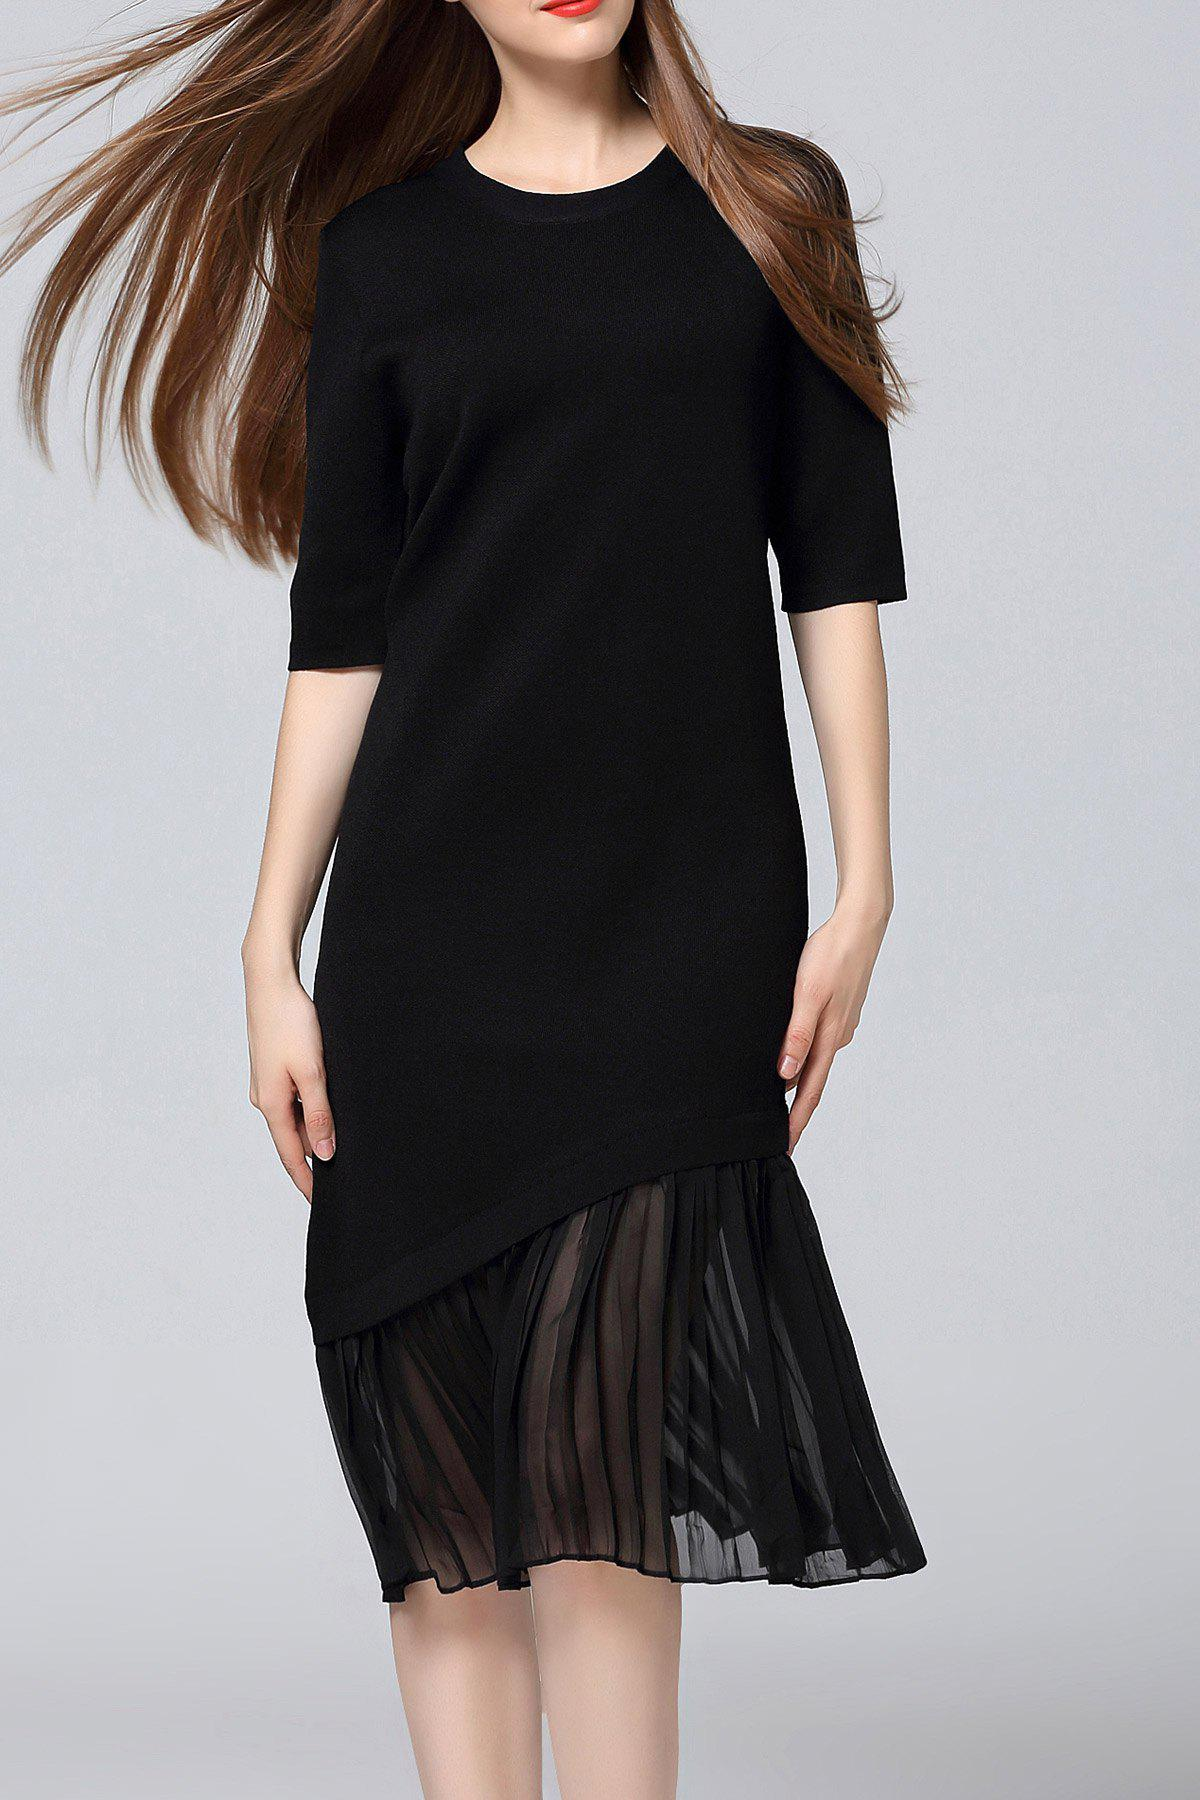 Plissé Sweater Midi Dress Noir Taille Unique(S'adap